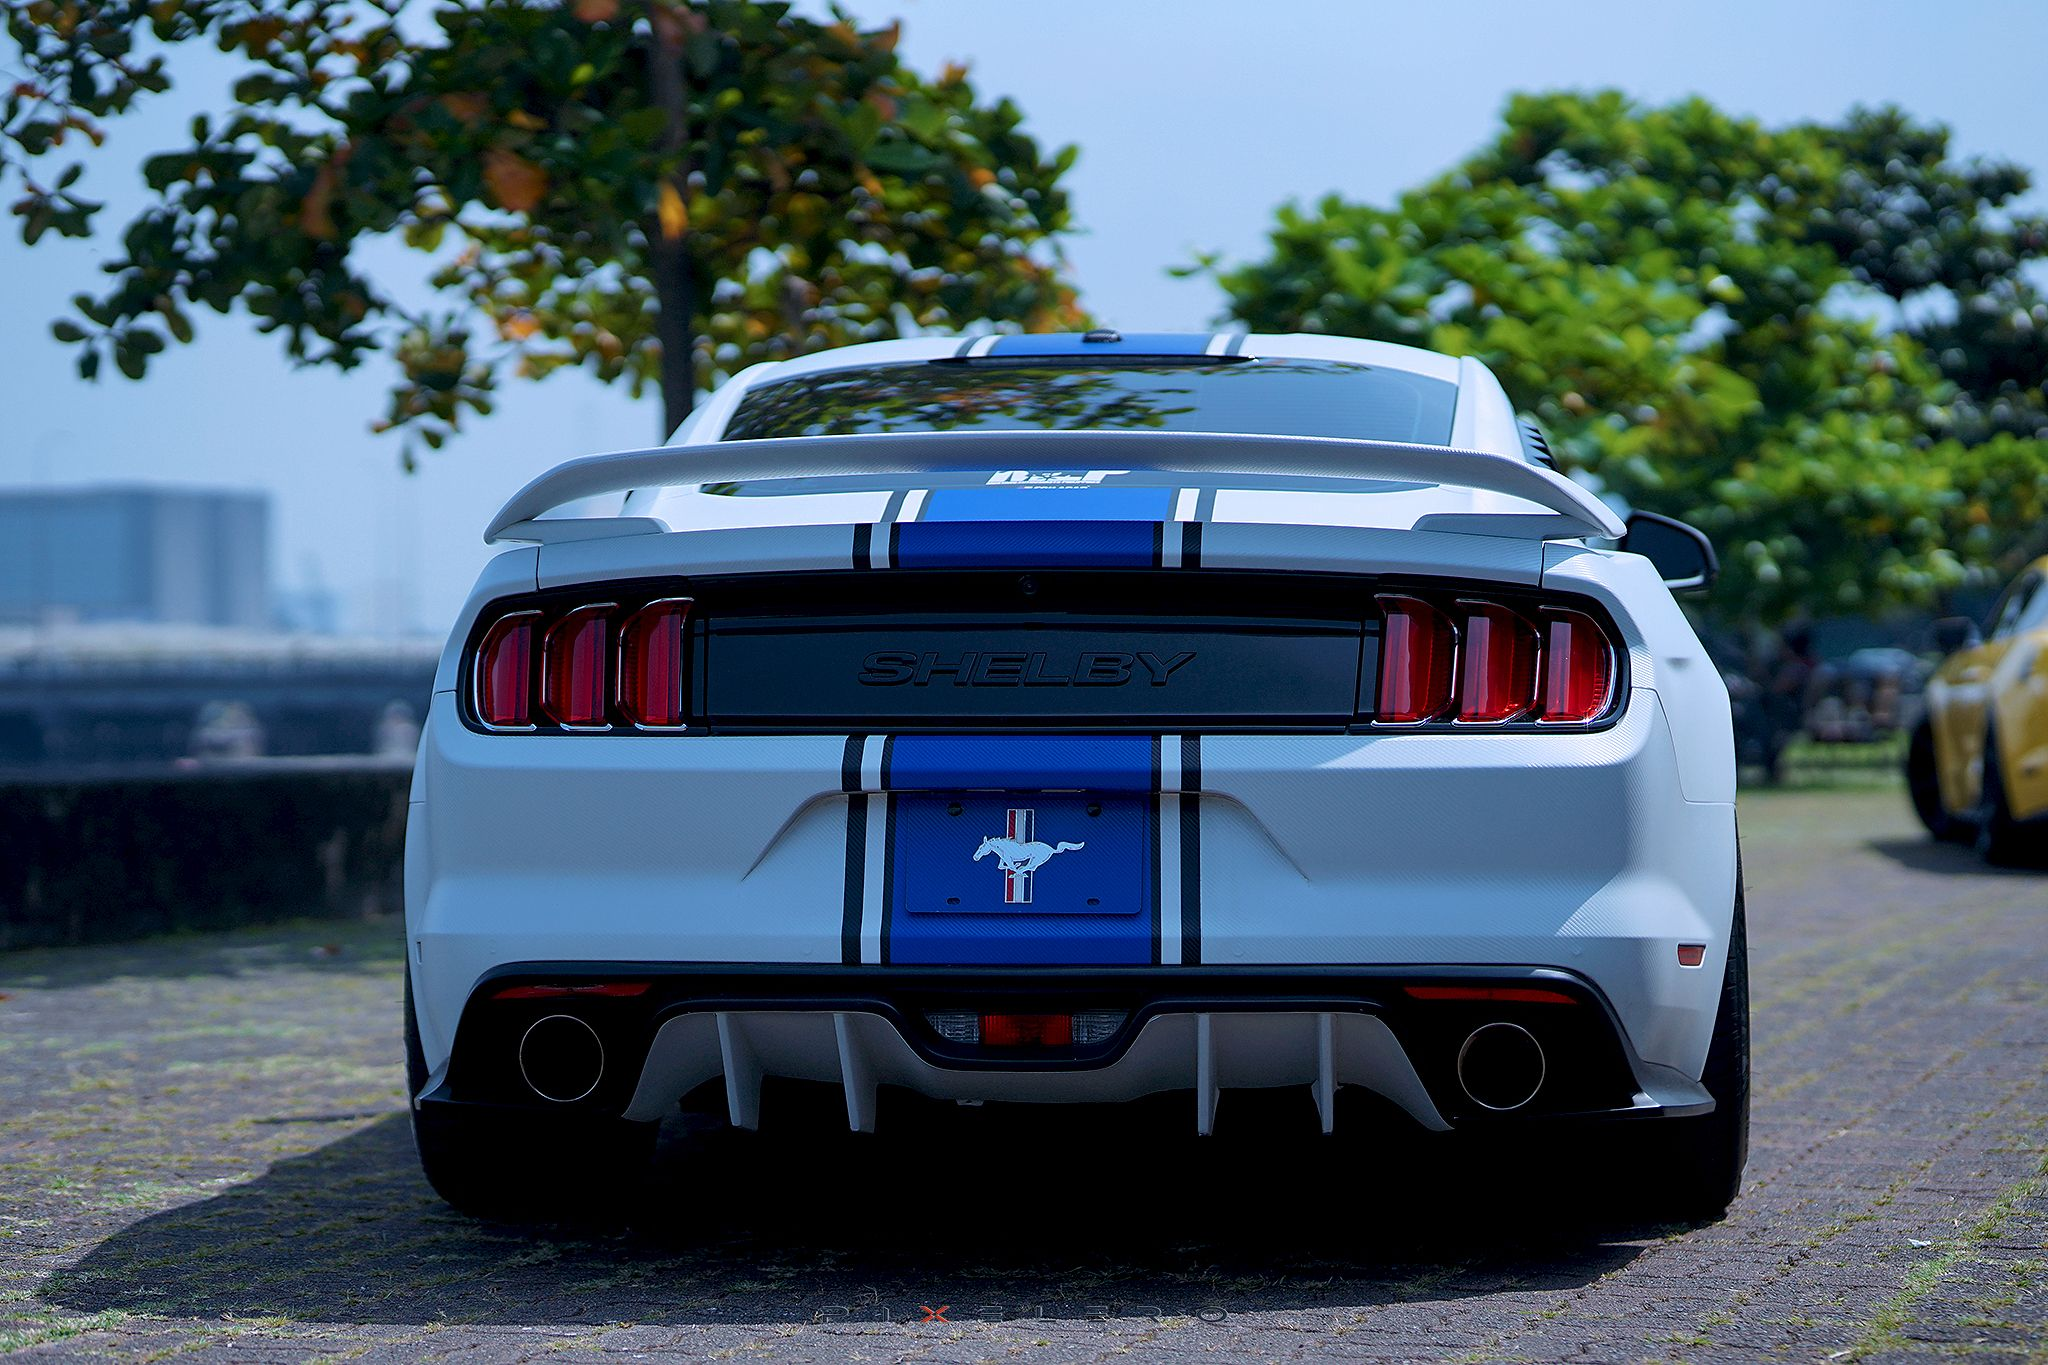 Mustang Ecoboost In Speedform Gt350r Style Spoiler And Type Ar Rear Diffuser Mustang Ecoboost Mustang Shelby